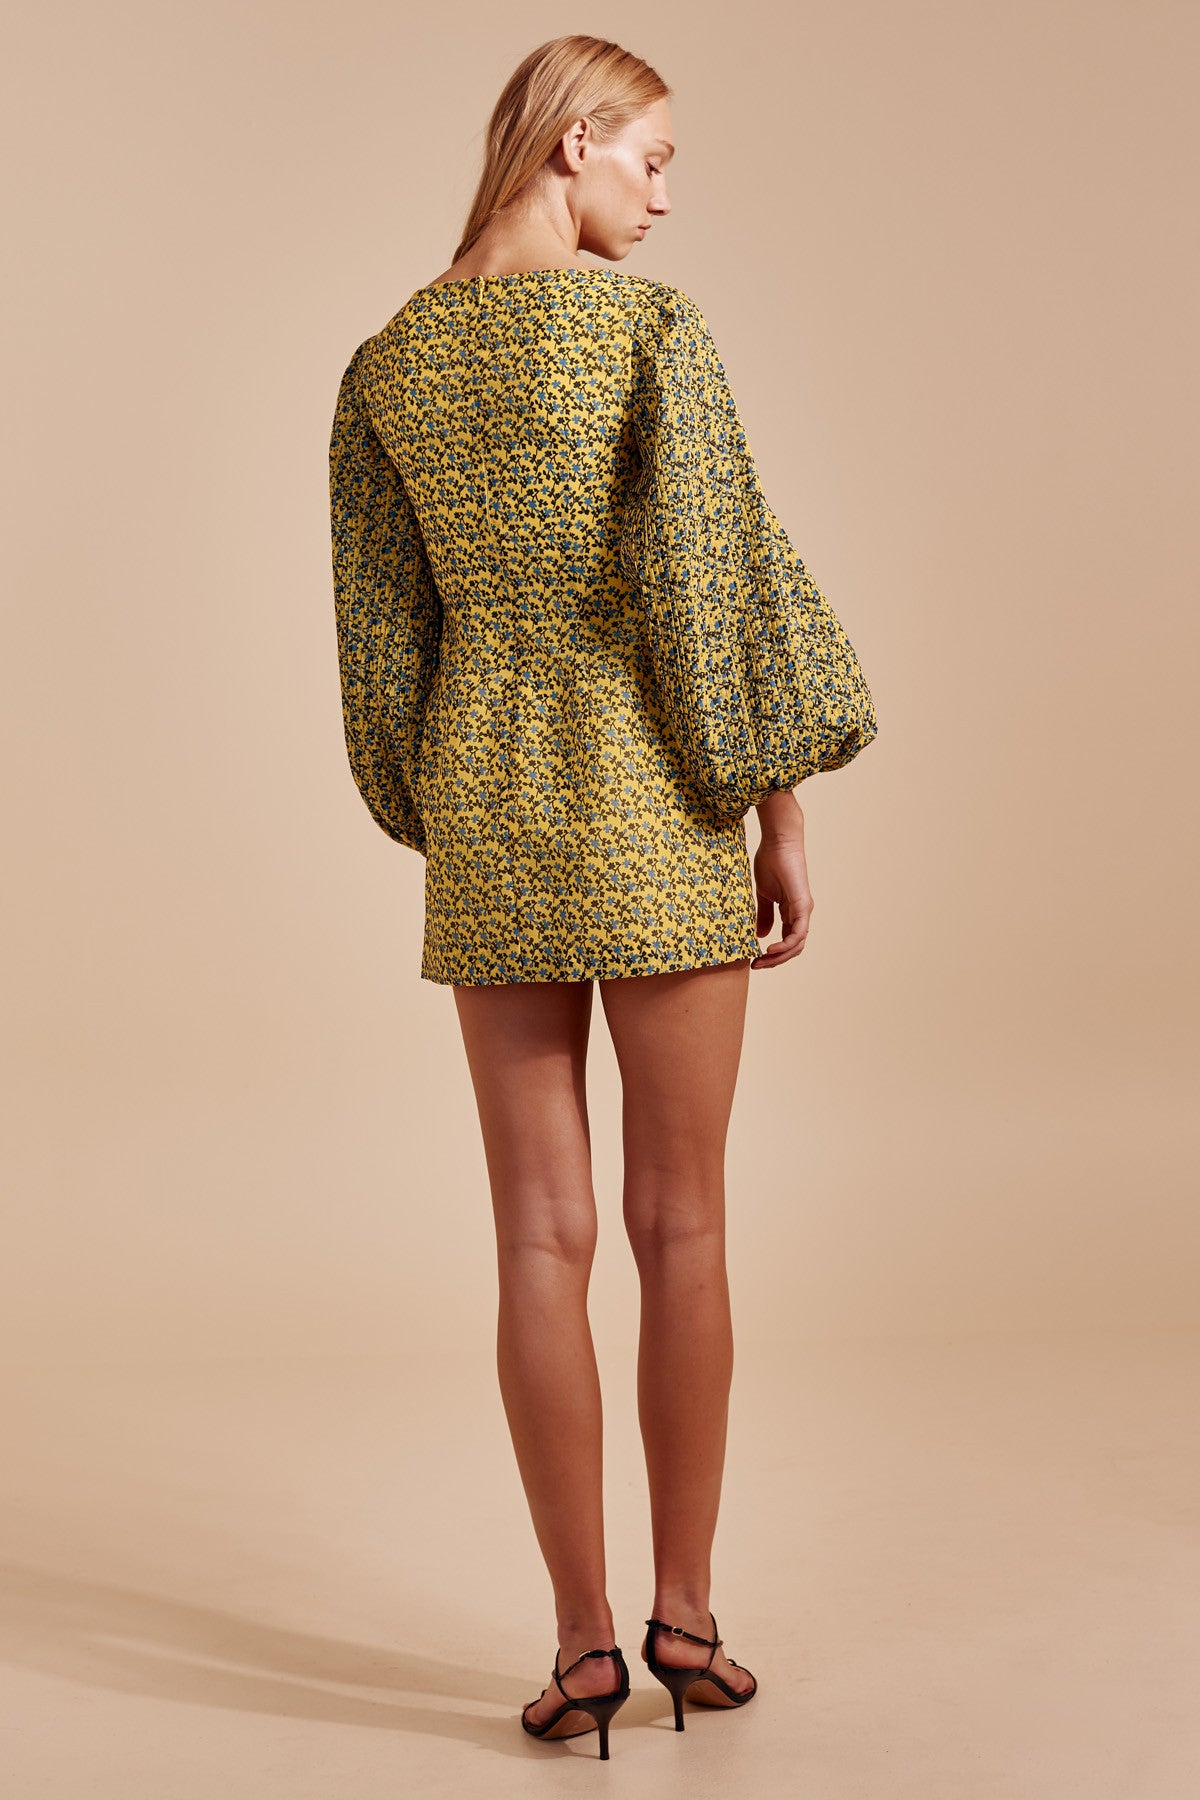 COME ACROSS LONG SLEEVE DRESS yellow floral